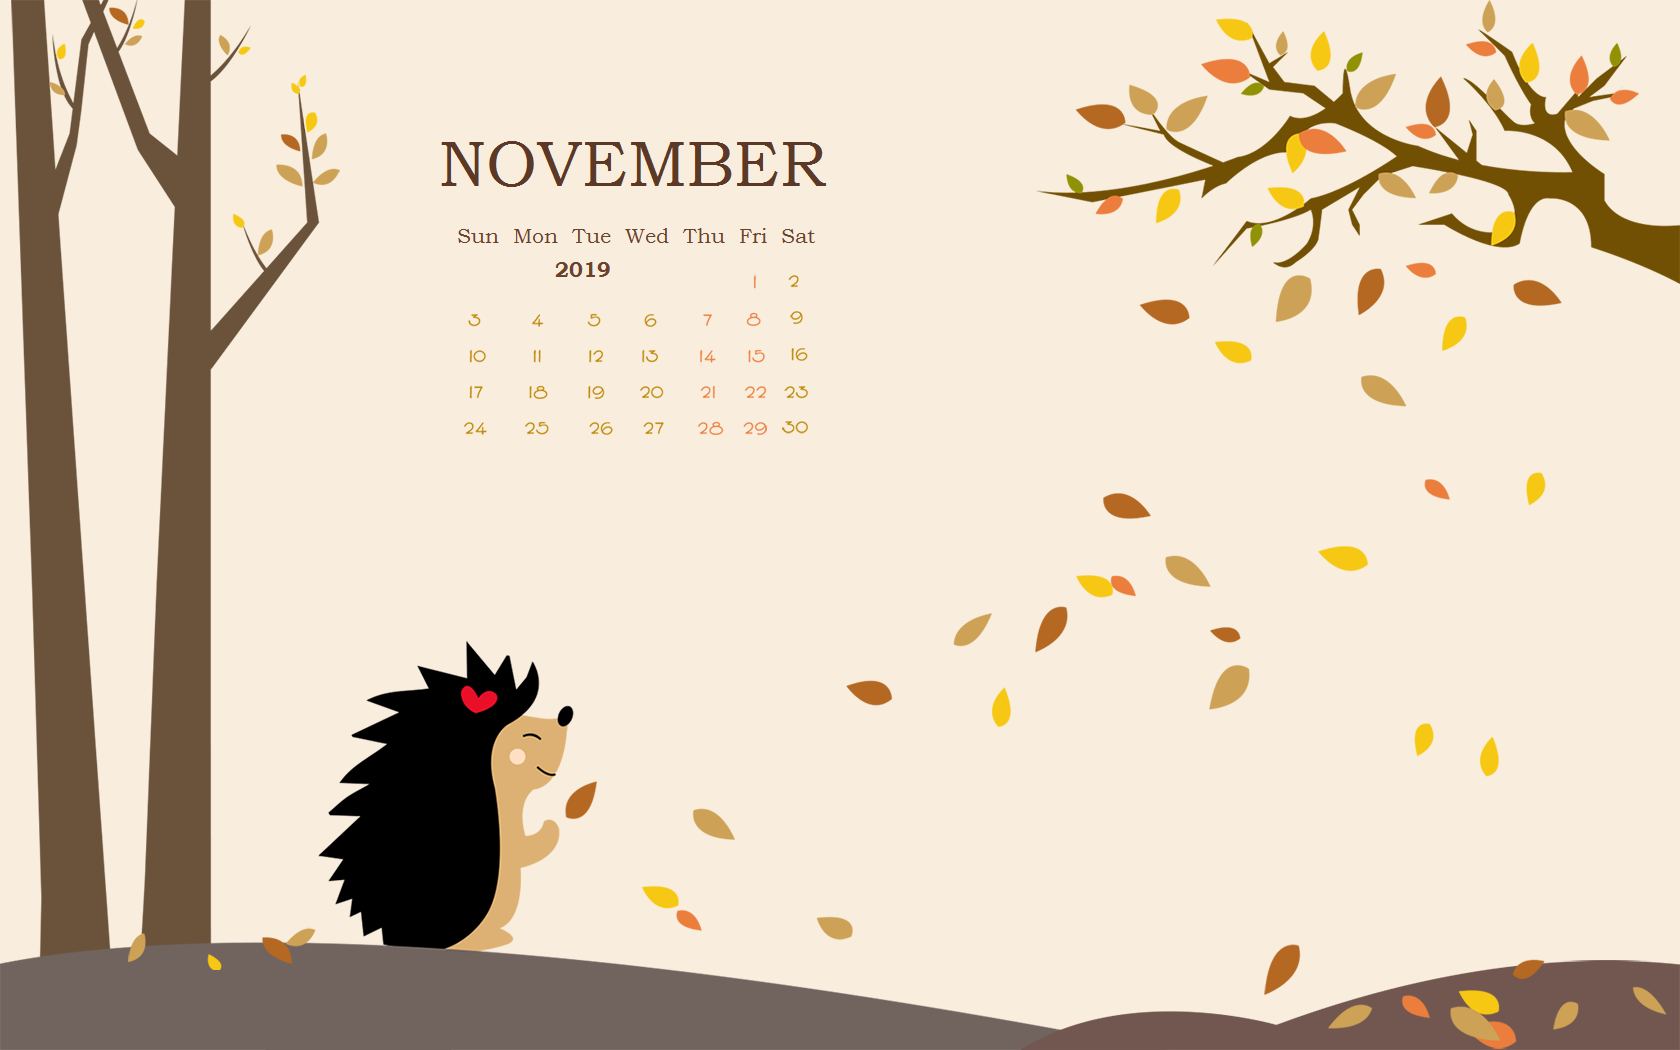 Floral November 2019 Calendar Wallpaper for Desktop Monthly 1680x1050